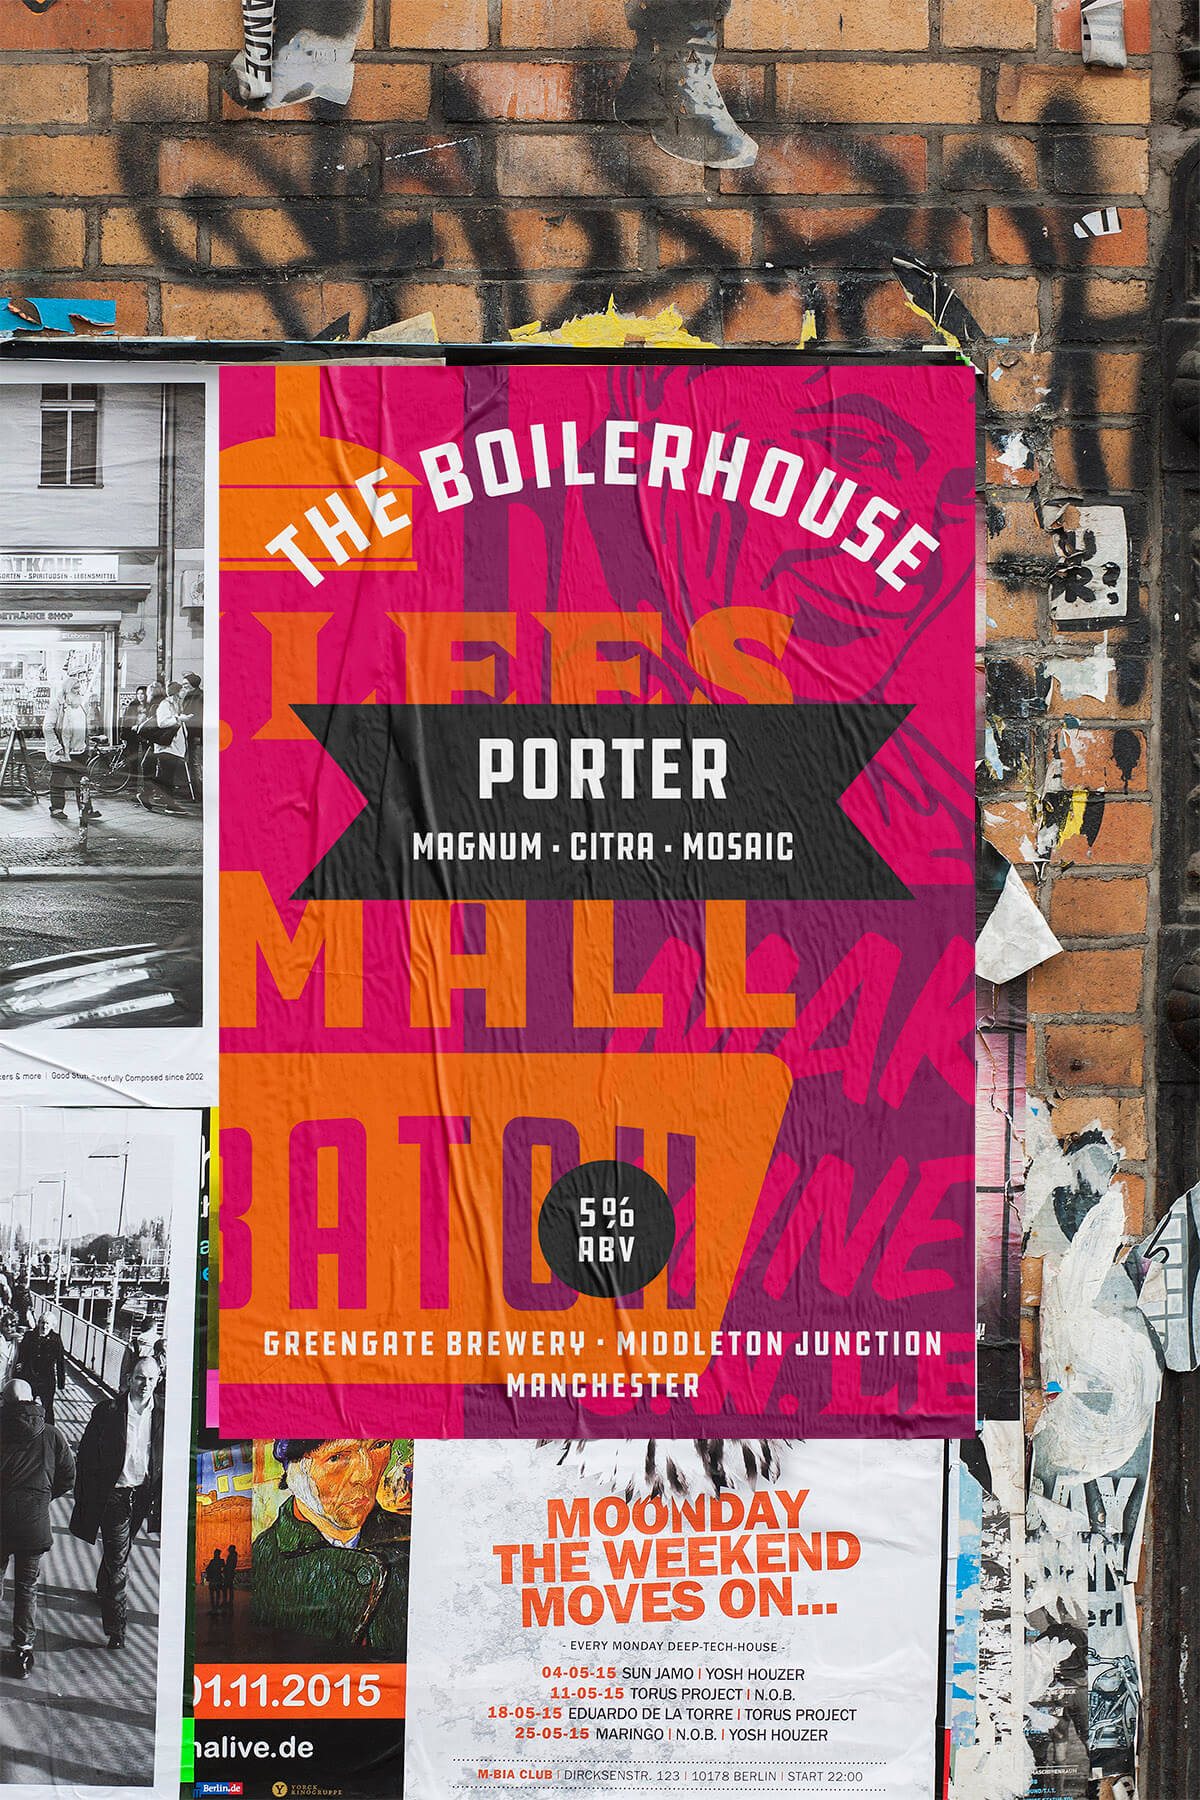 The Boilerhouse